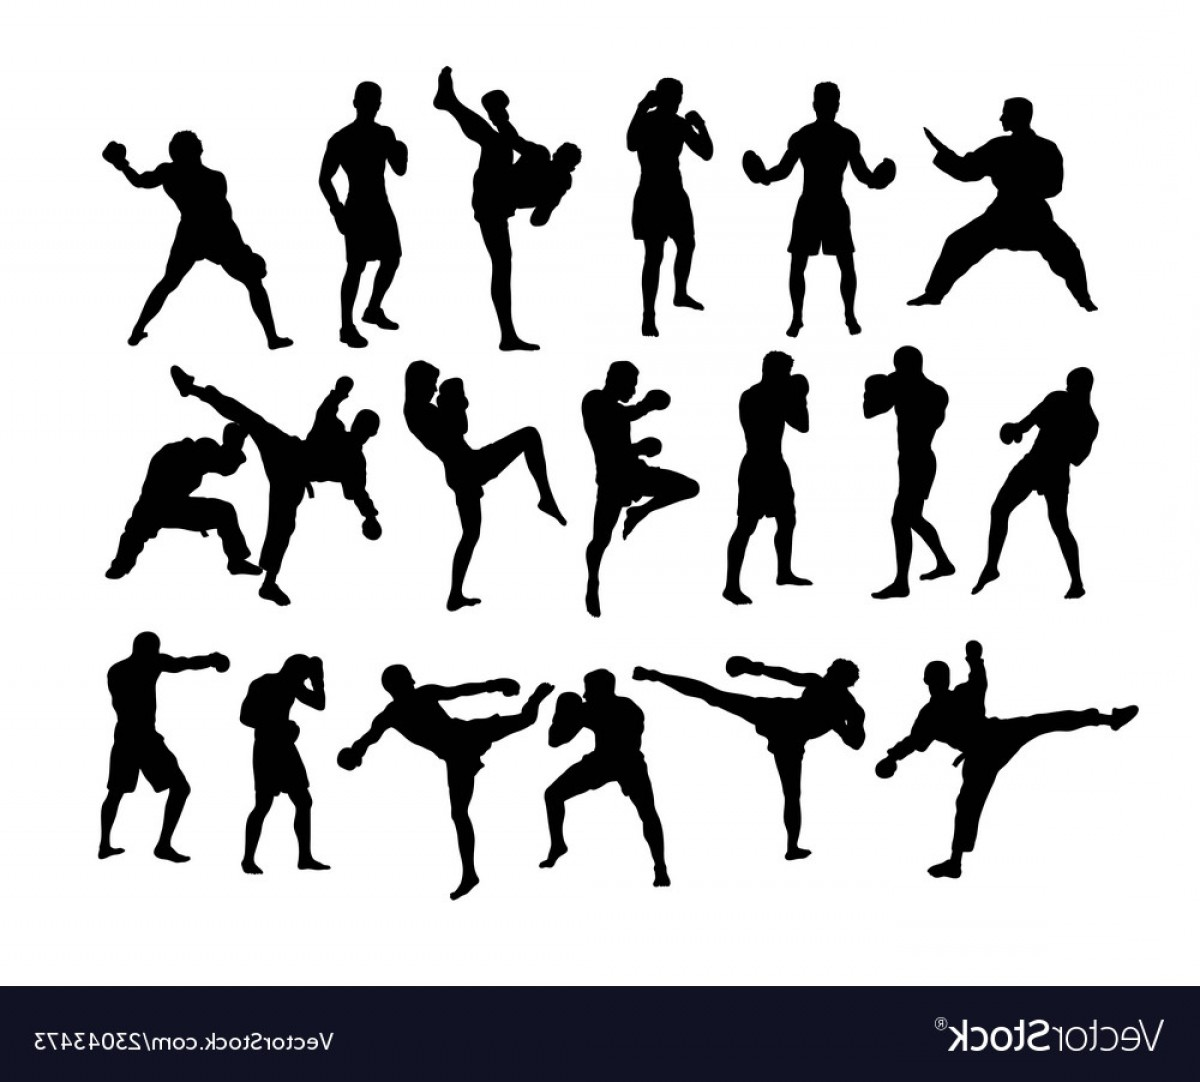 UFC Kick Vector: Boxing And Competition Silhouettes Vector